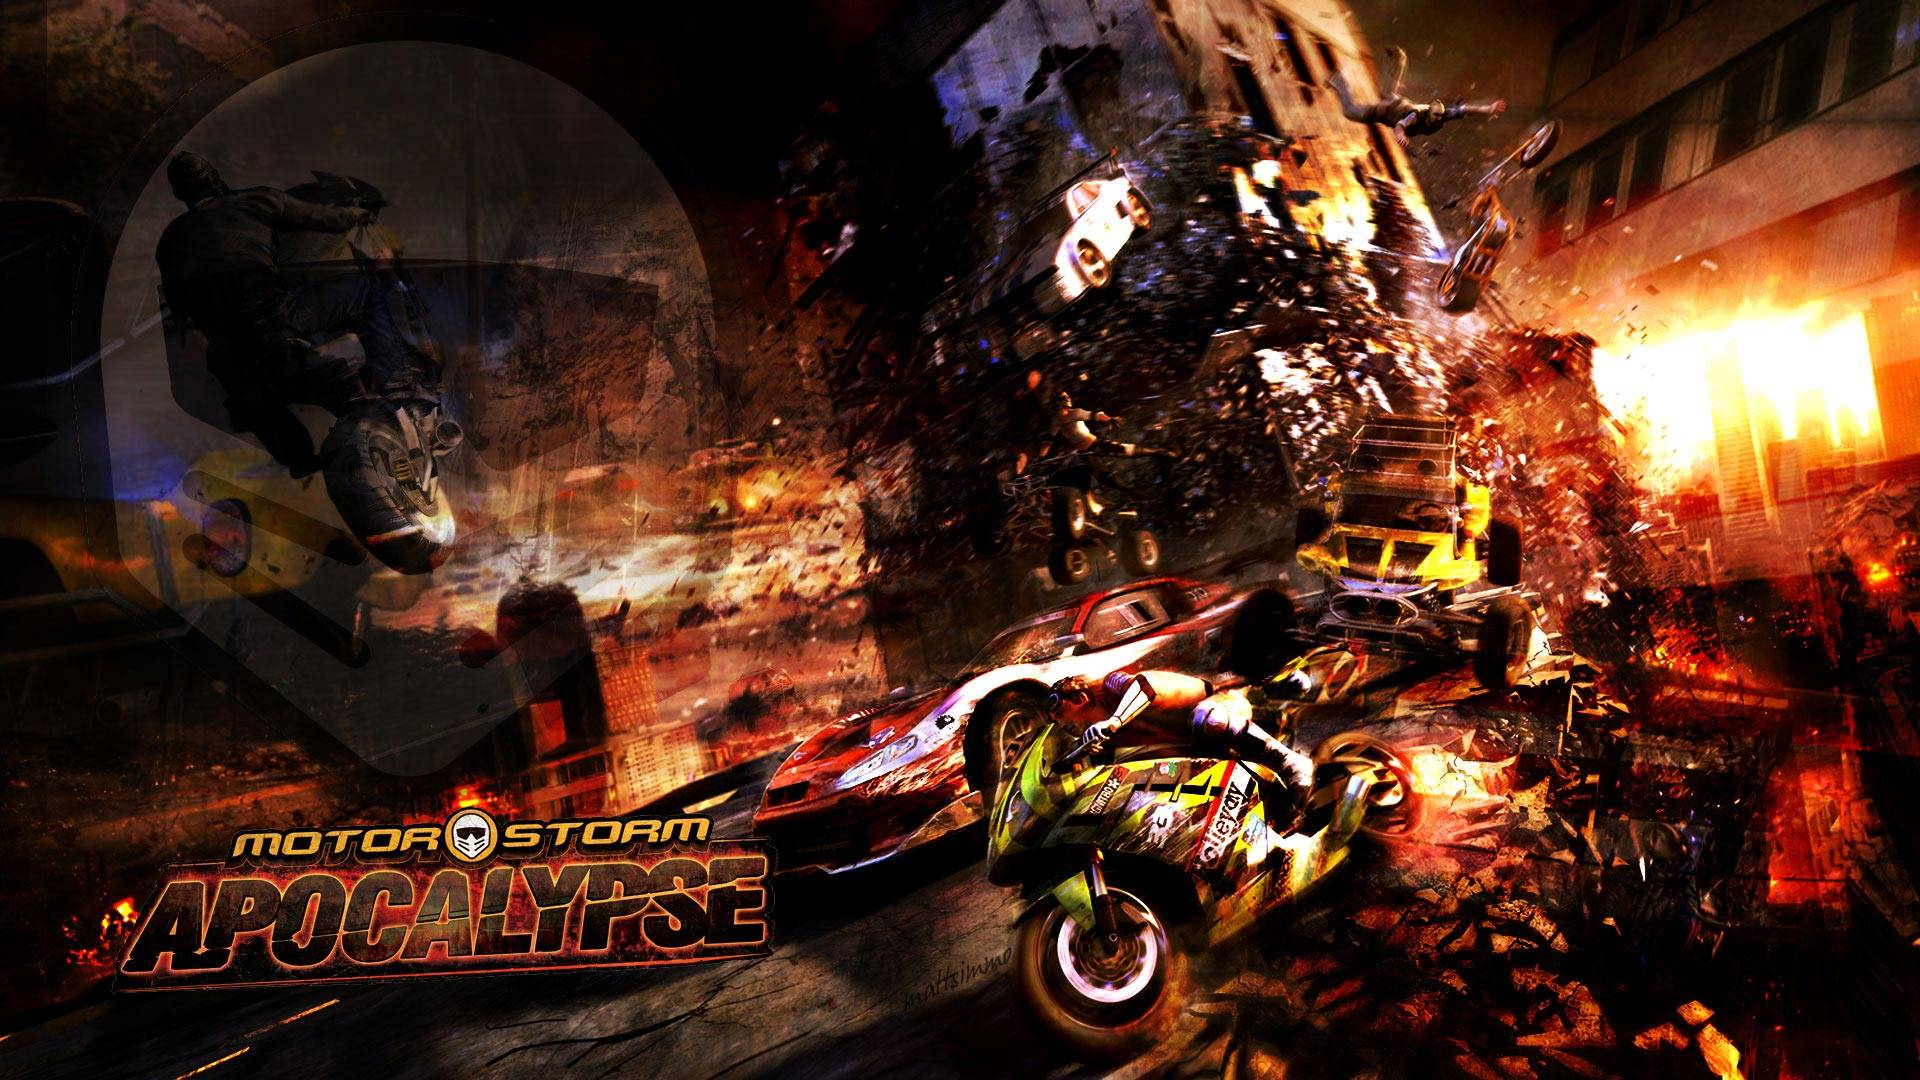 Full Hd Motorcycle Wallpaper Apocalypse Wallpapers Wallpaper Cave